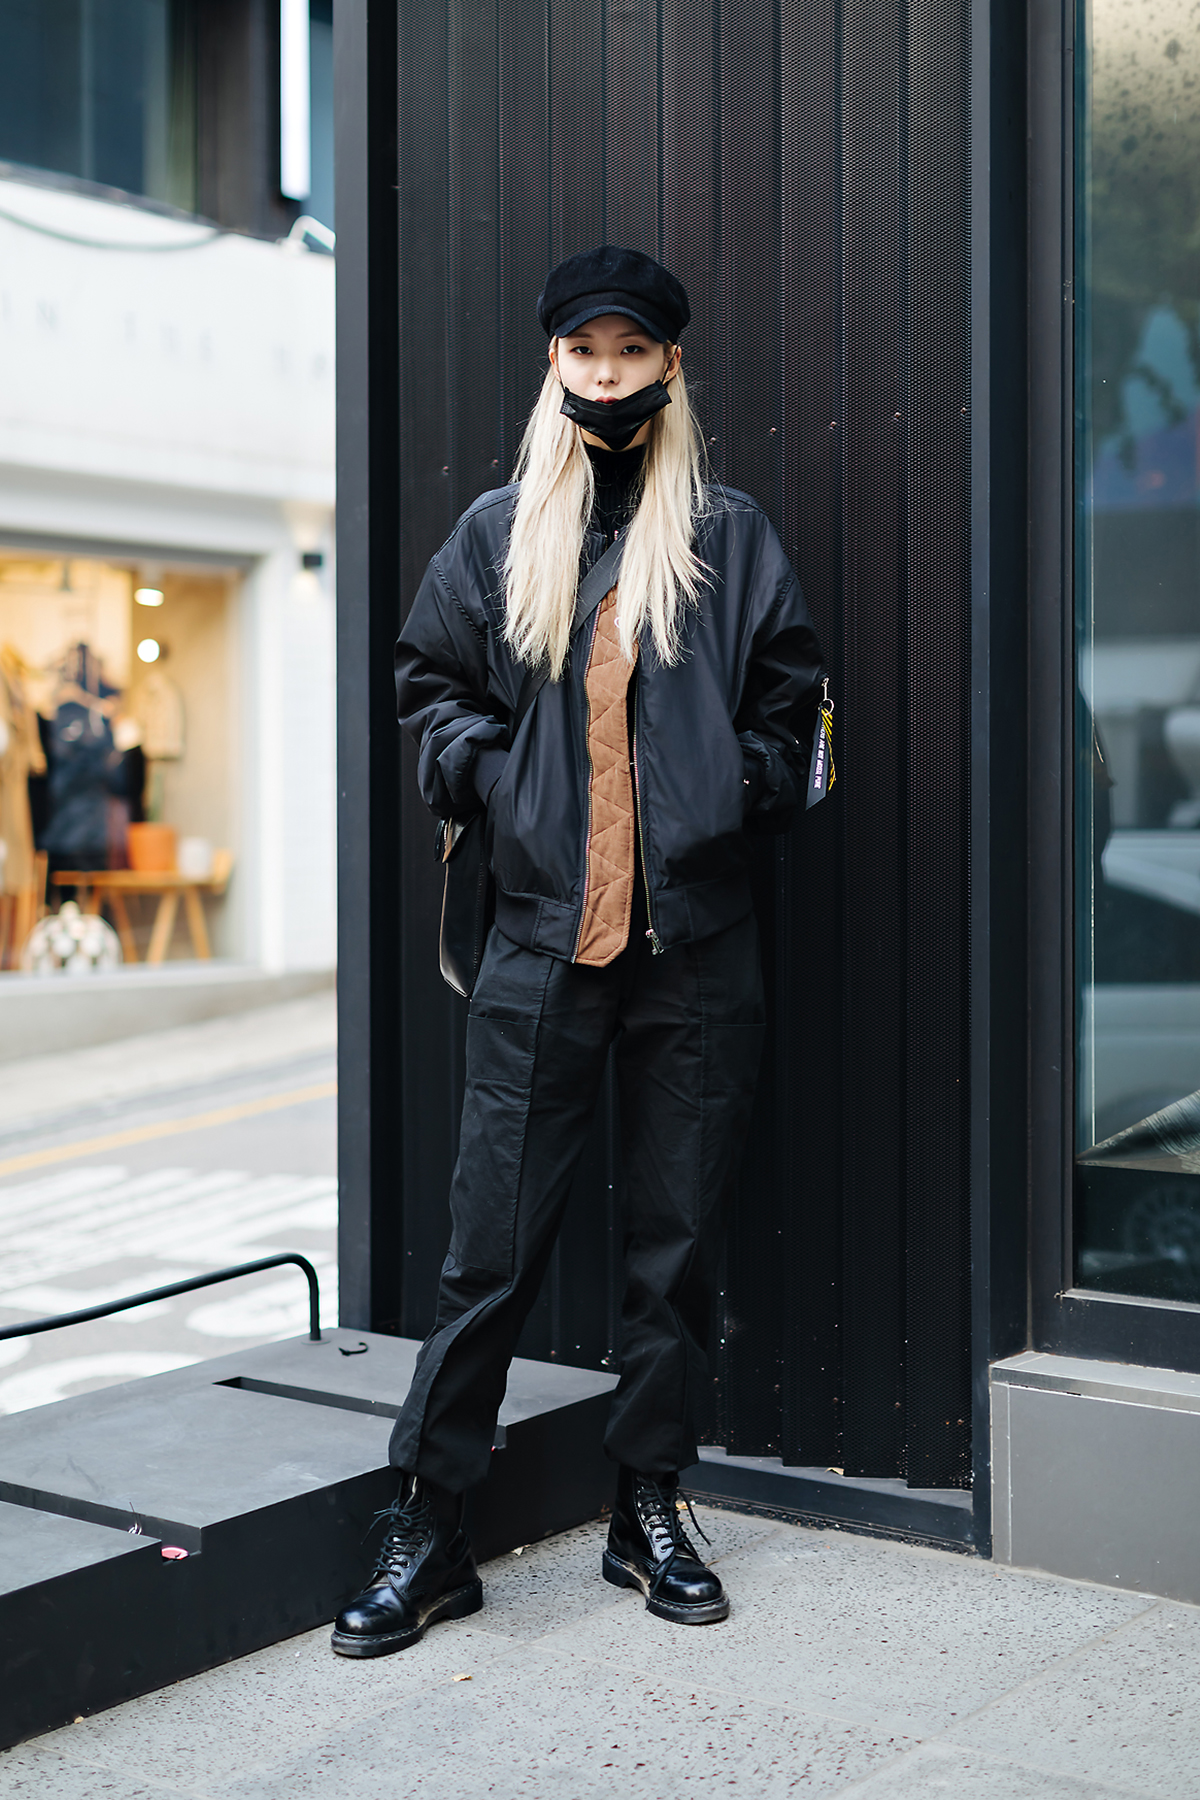 Women fall street style fourth week of october 2018 in seoul 4